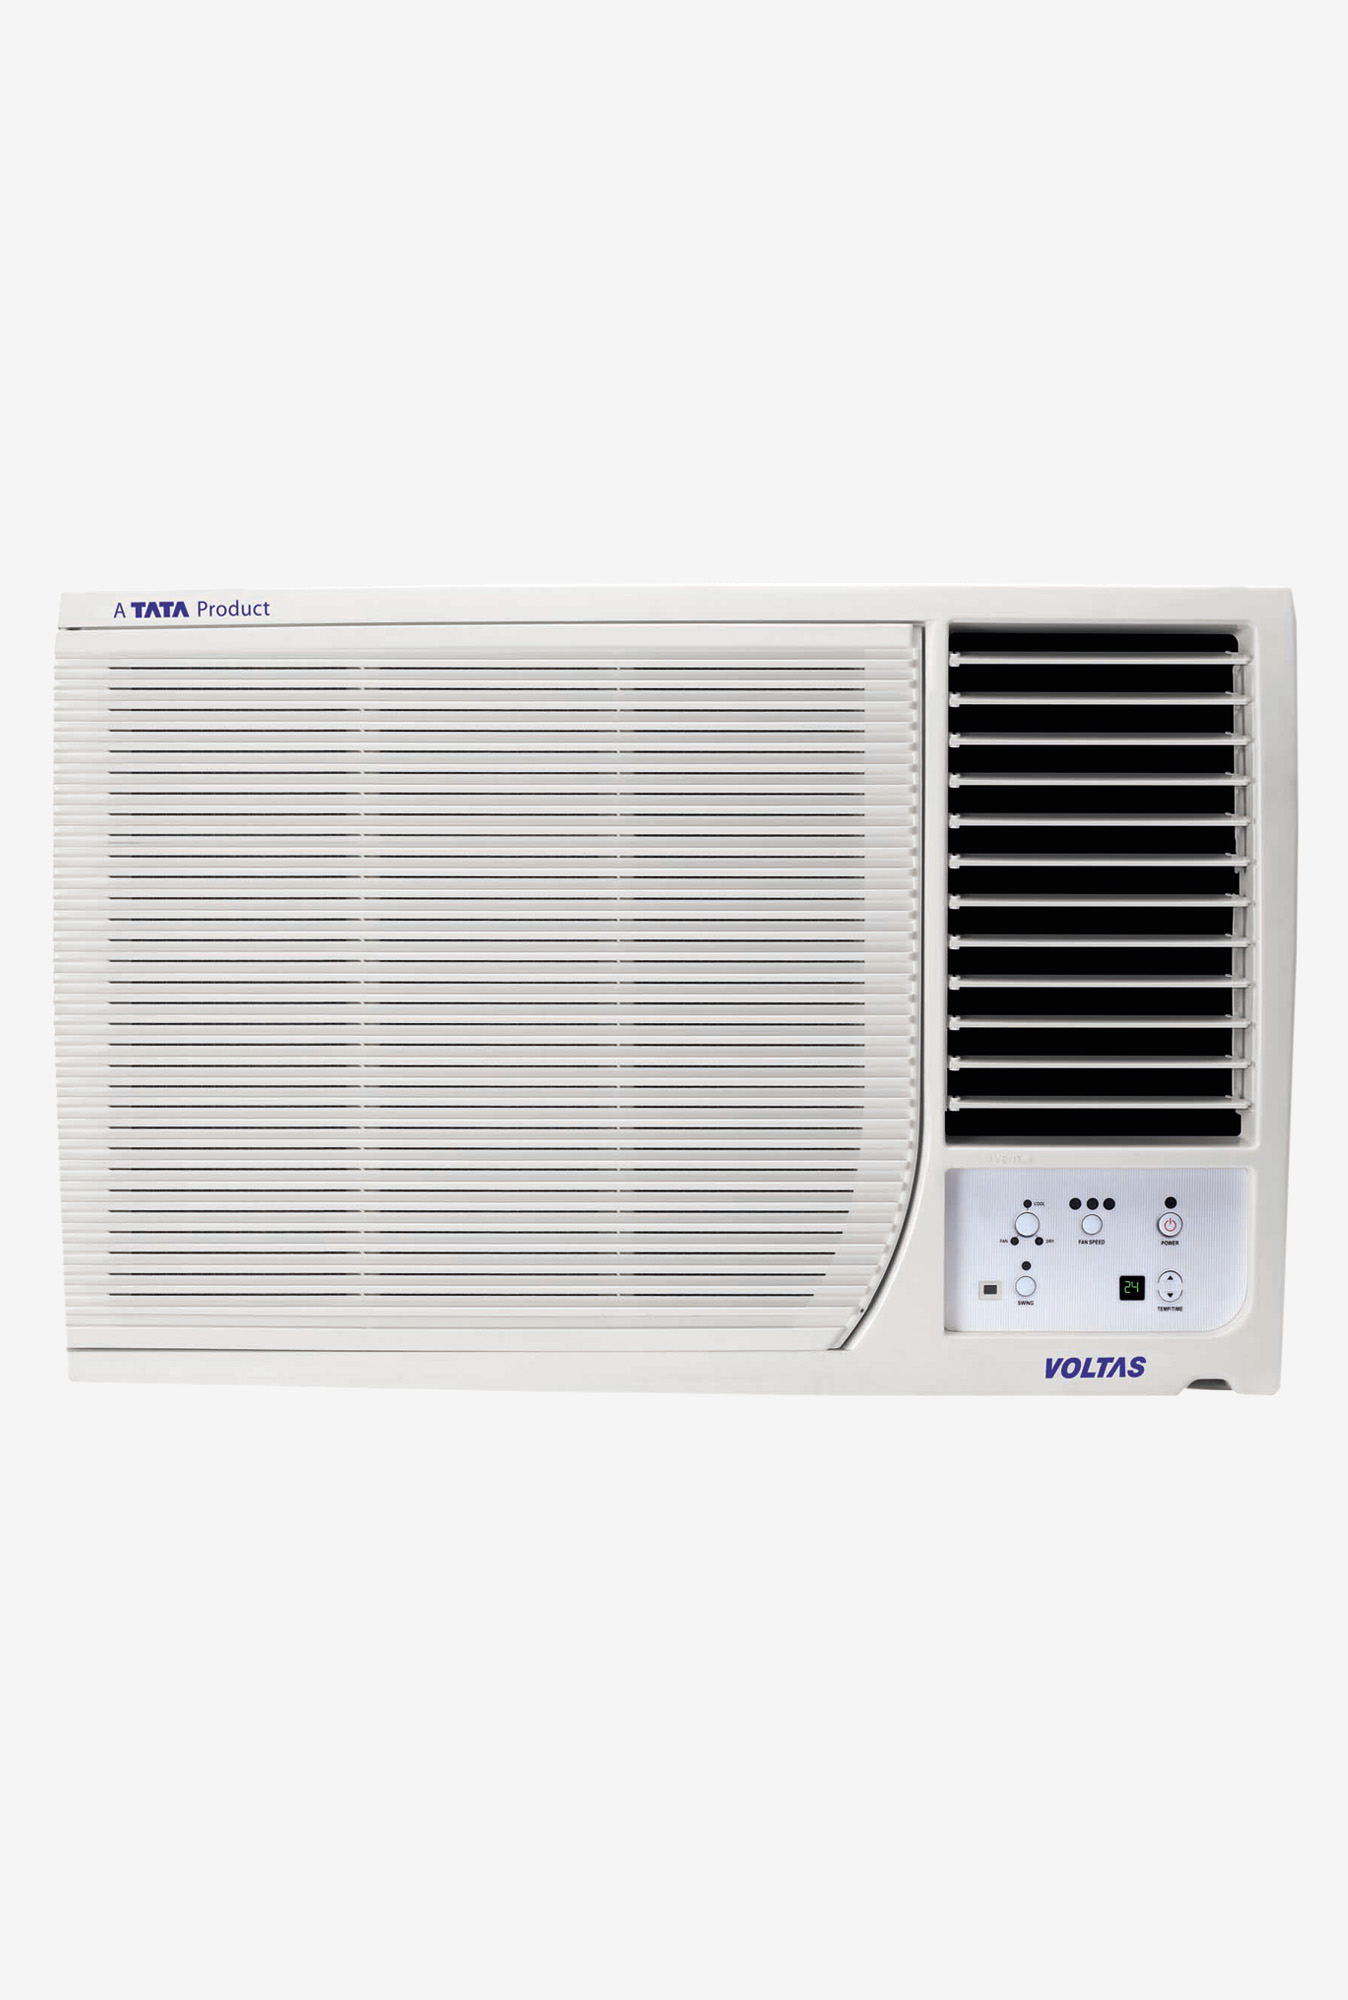 Buy voltas 182 dye 1 5 ton 2 star window ac copper white for 1 ton window ac